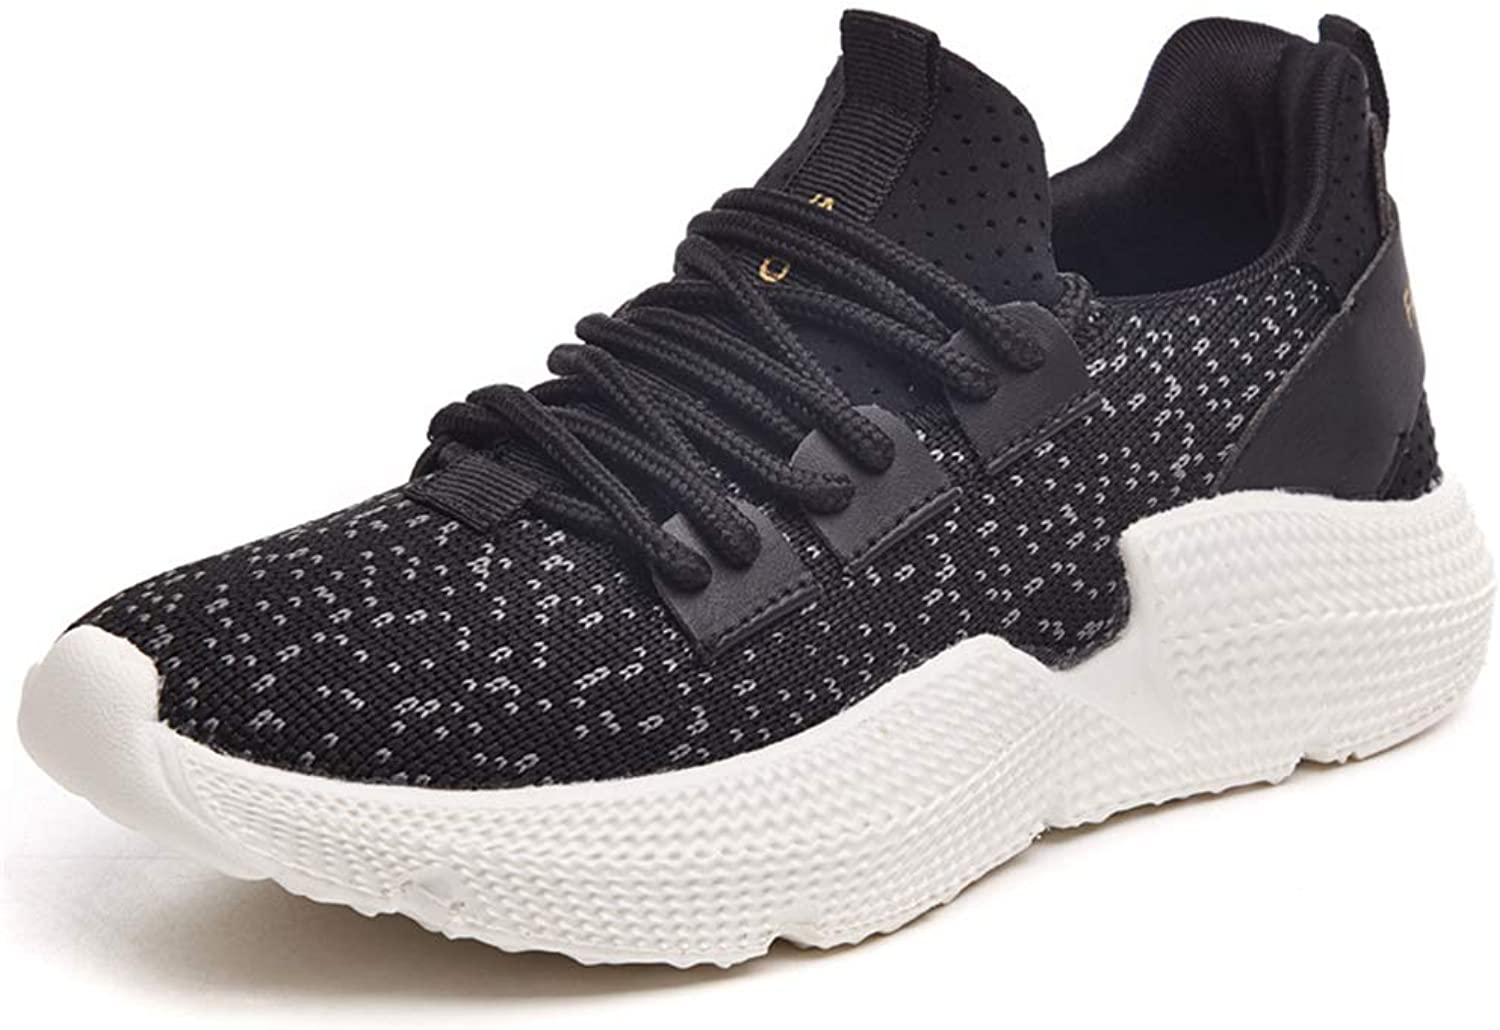 ProDIgal Women's Lightweight Mesh Sport Running shoes Powder Black White Comfortable